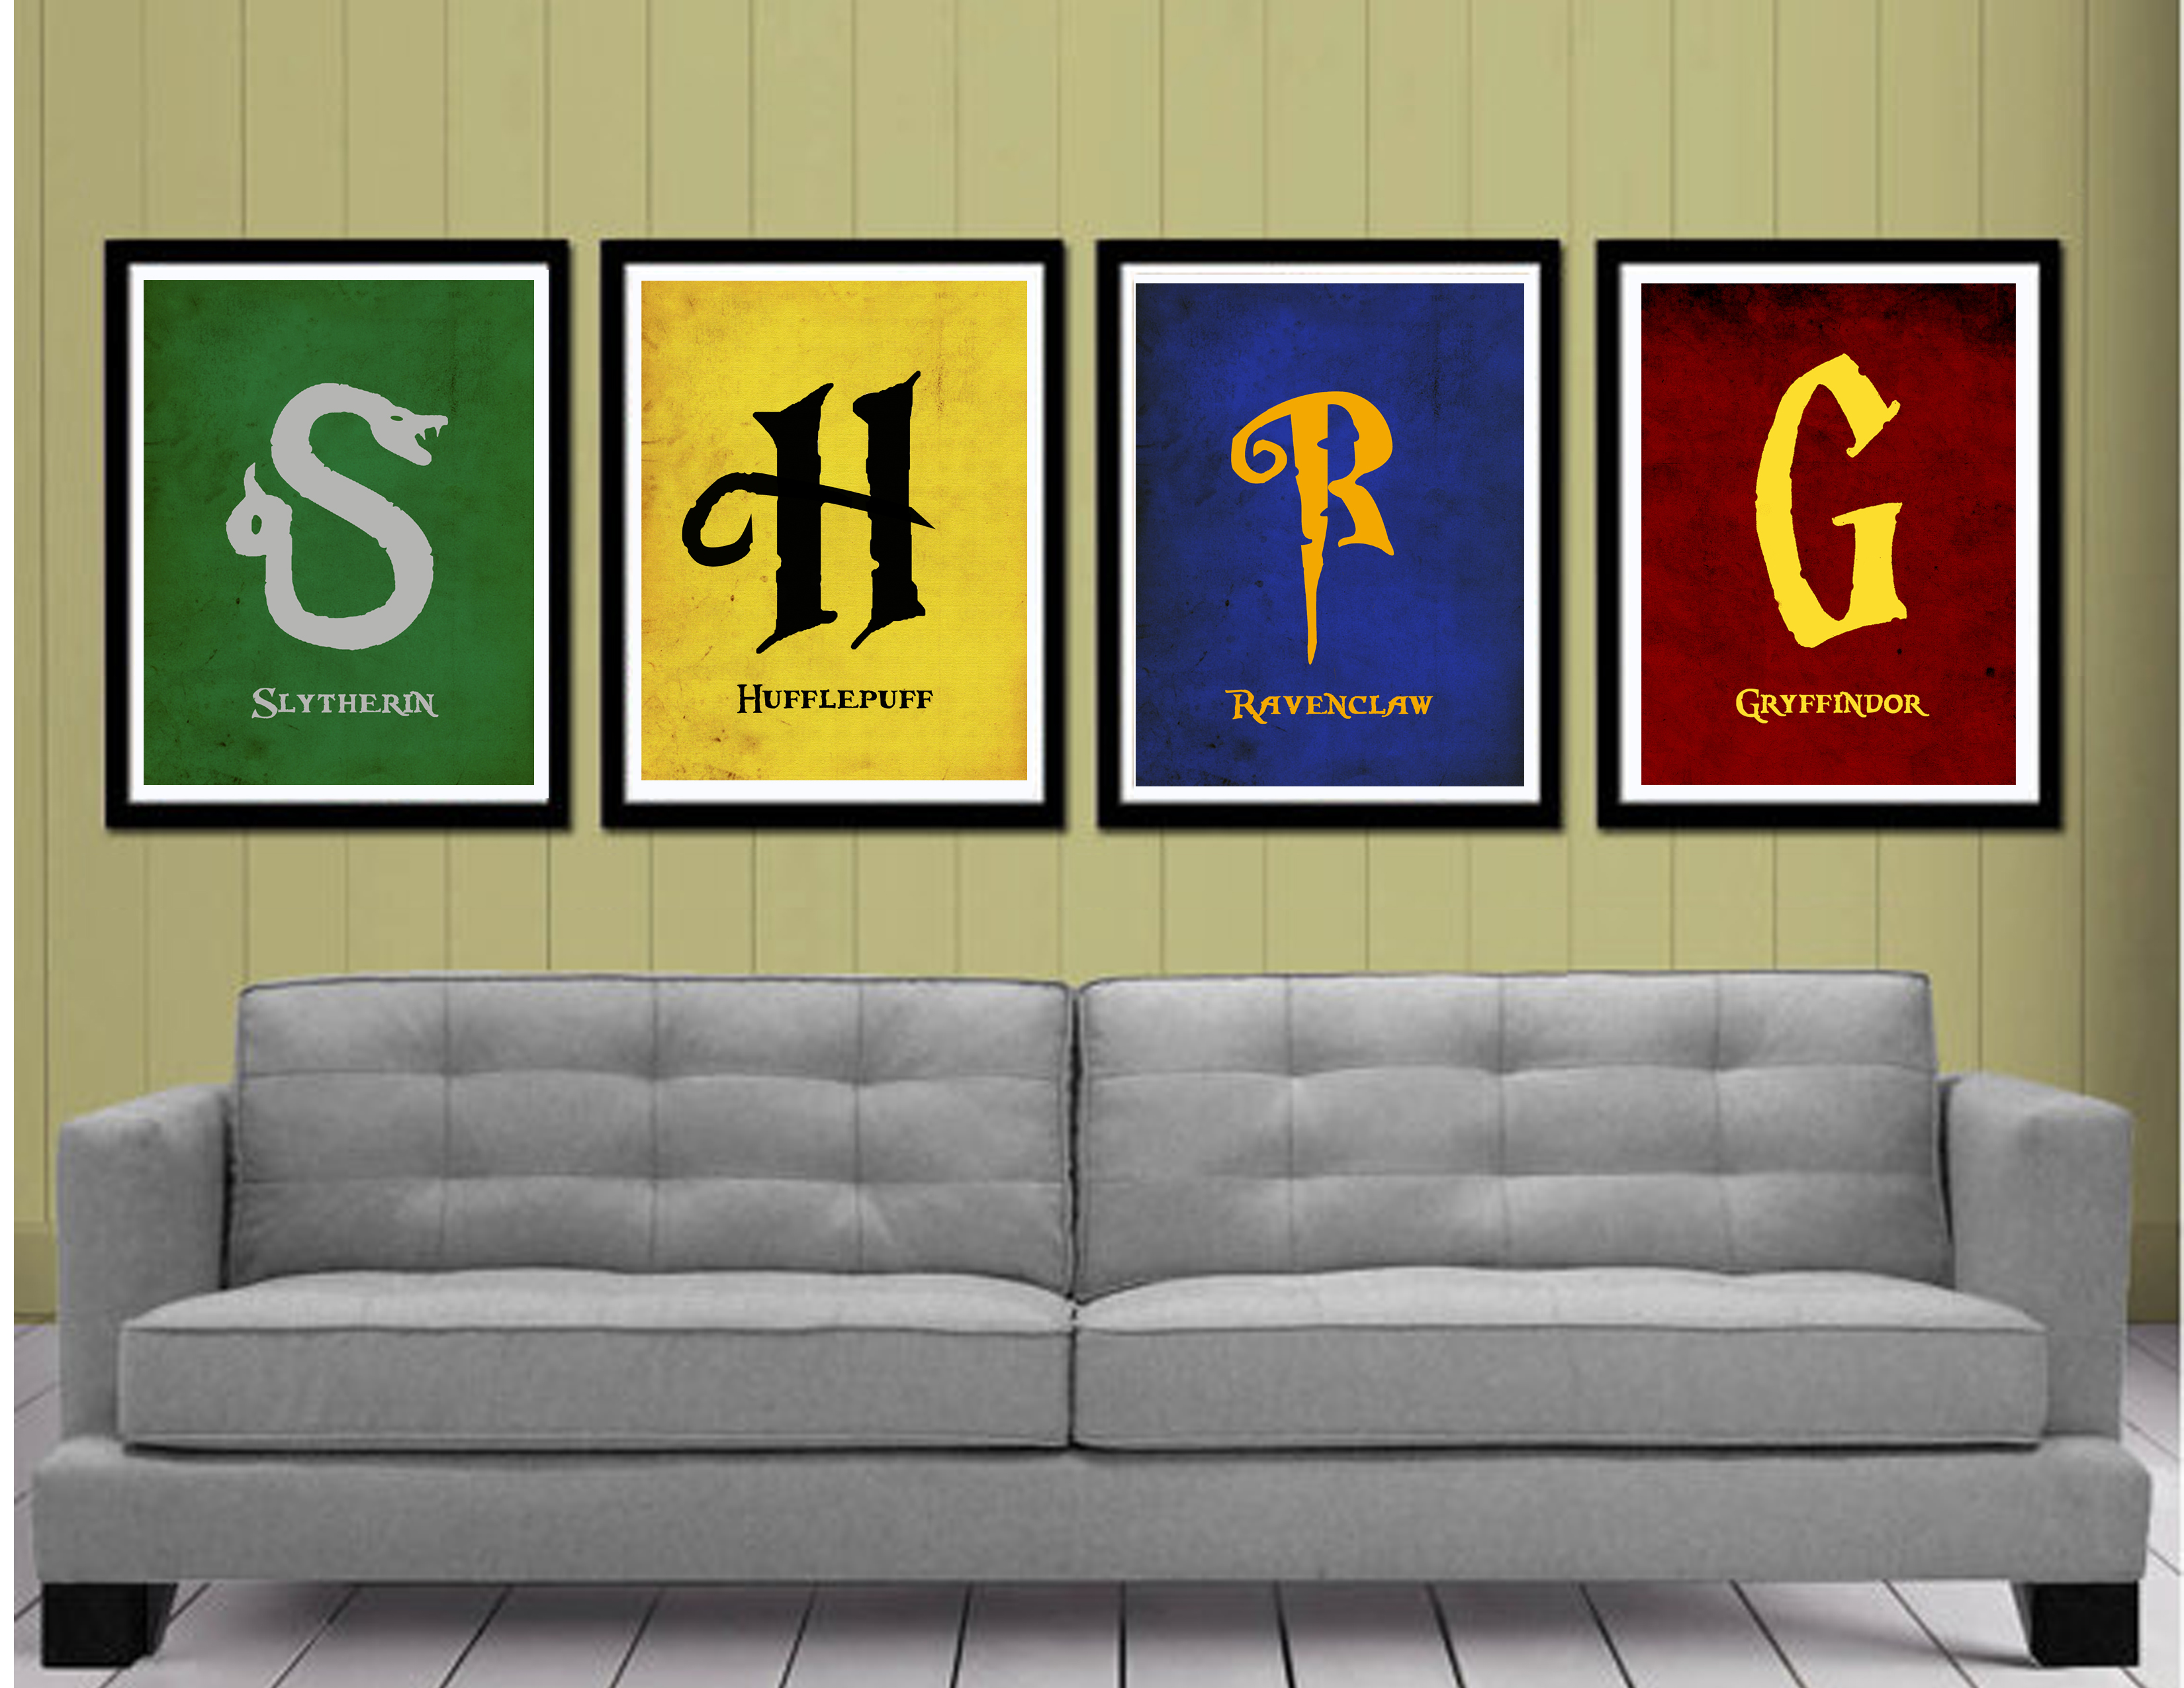 Harry potter houses minimalist posters 4 pack on storenvy for Minimalist house logo